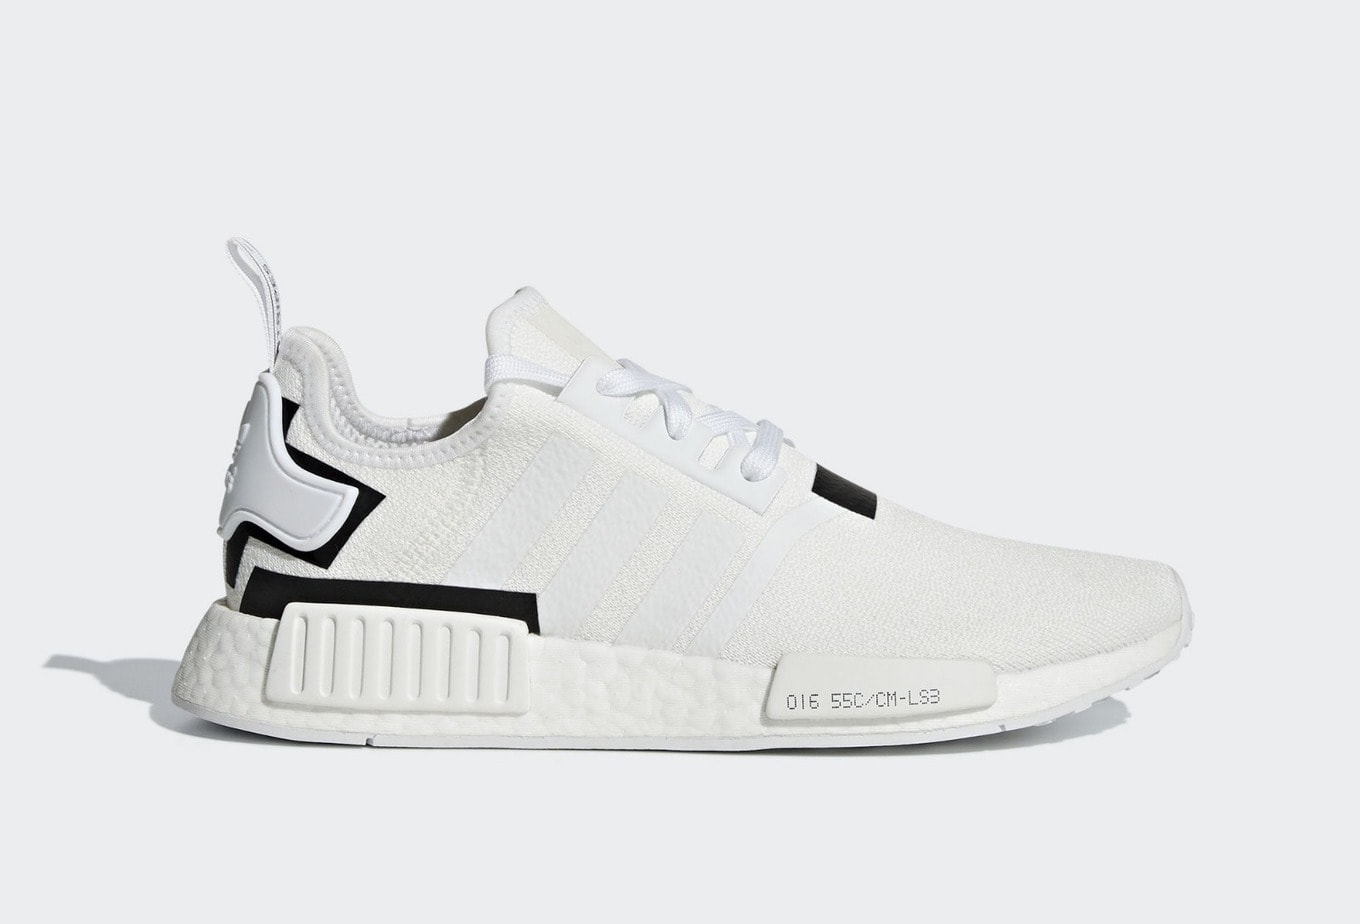 f24b769f854d6 The adidas NMD R1 is constantly coming out in new iterations and new  colorways